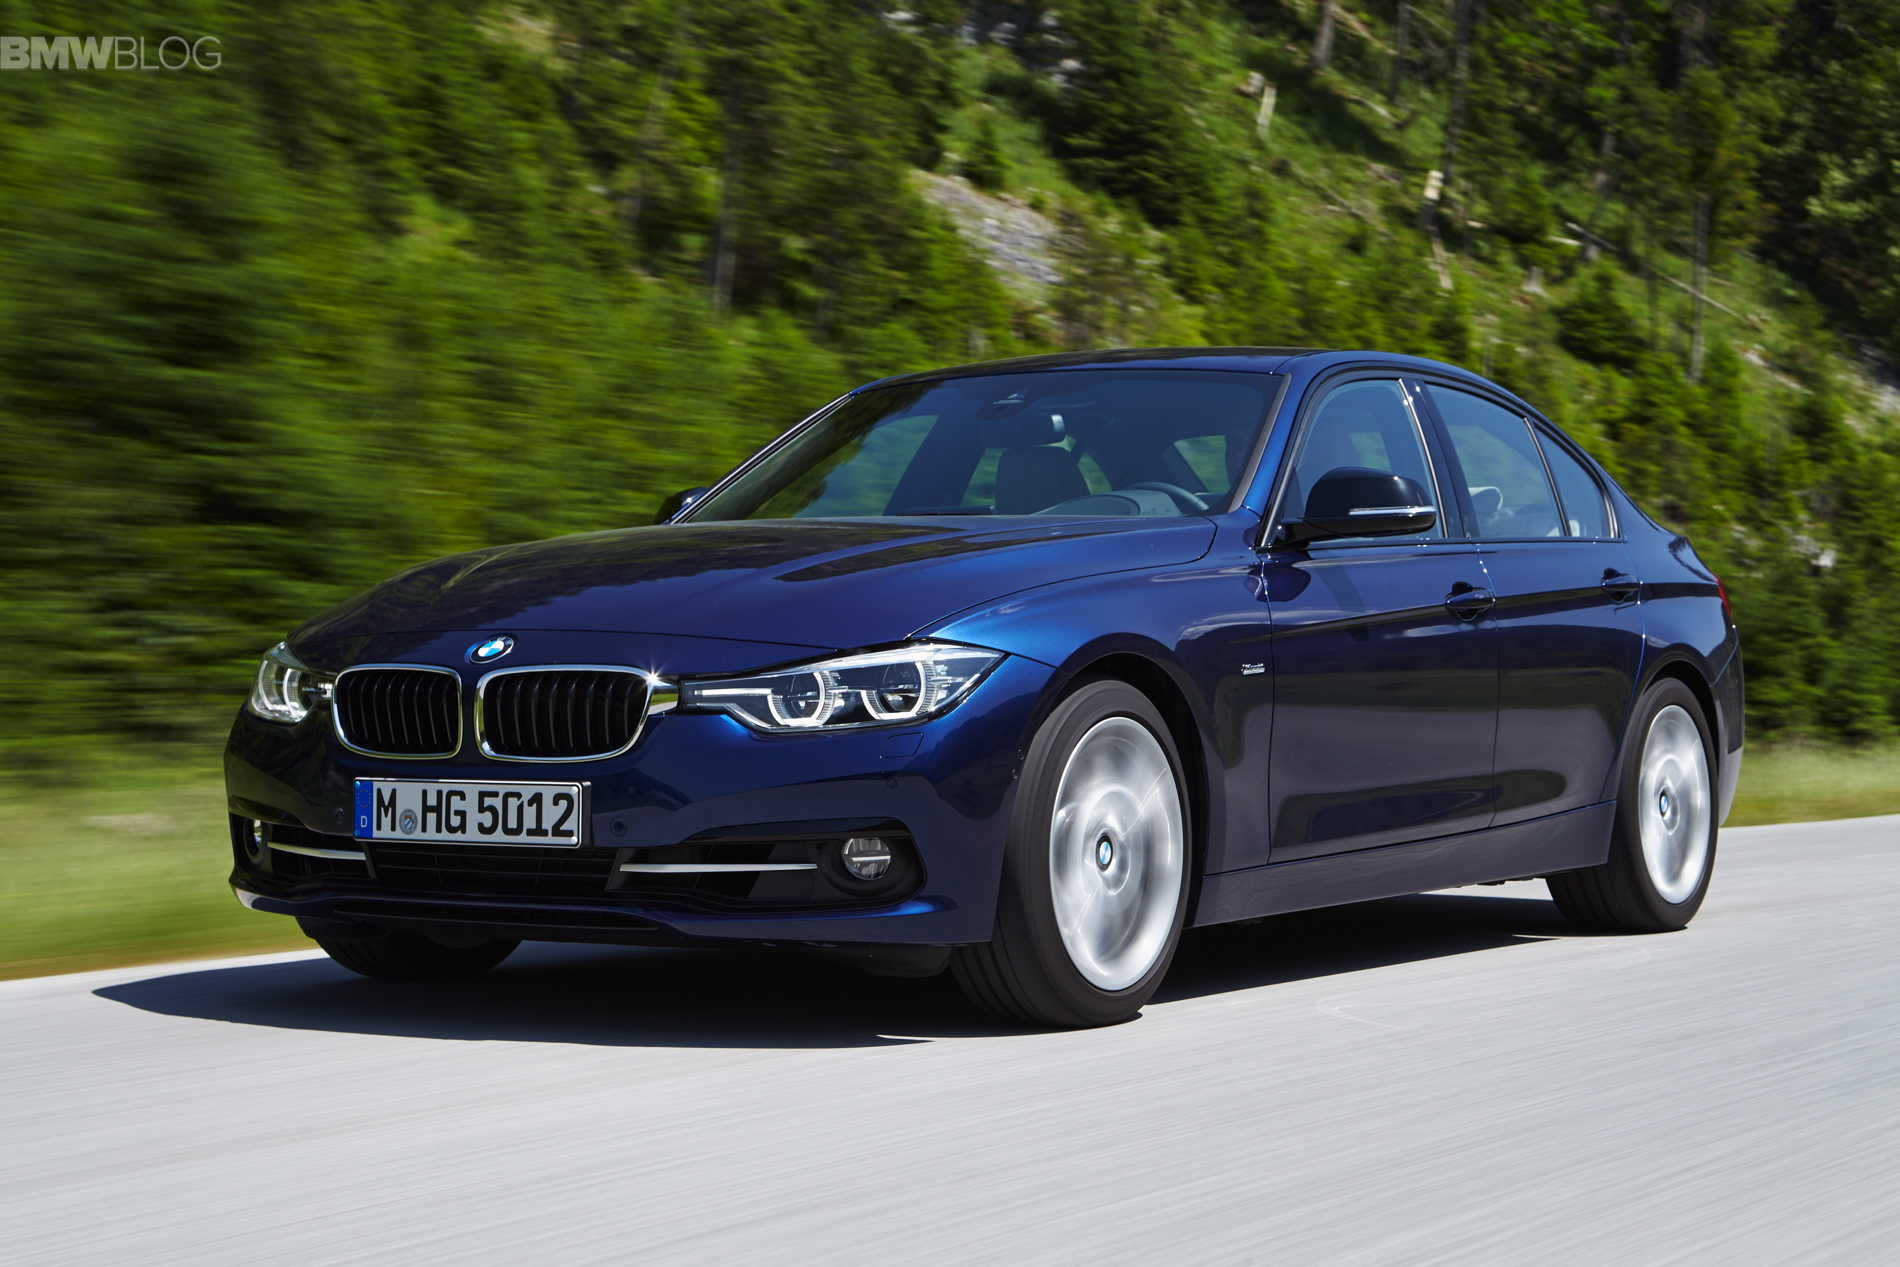 2016 bmw 325d sedan and touring powered by a new engine. Black Bedroom Furniture Sets. Home Design Ideas